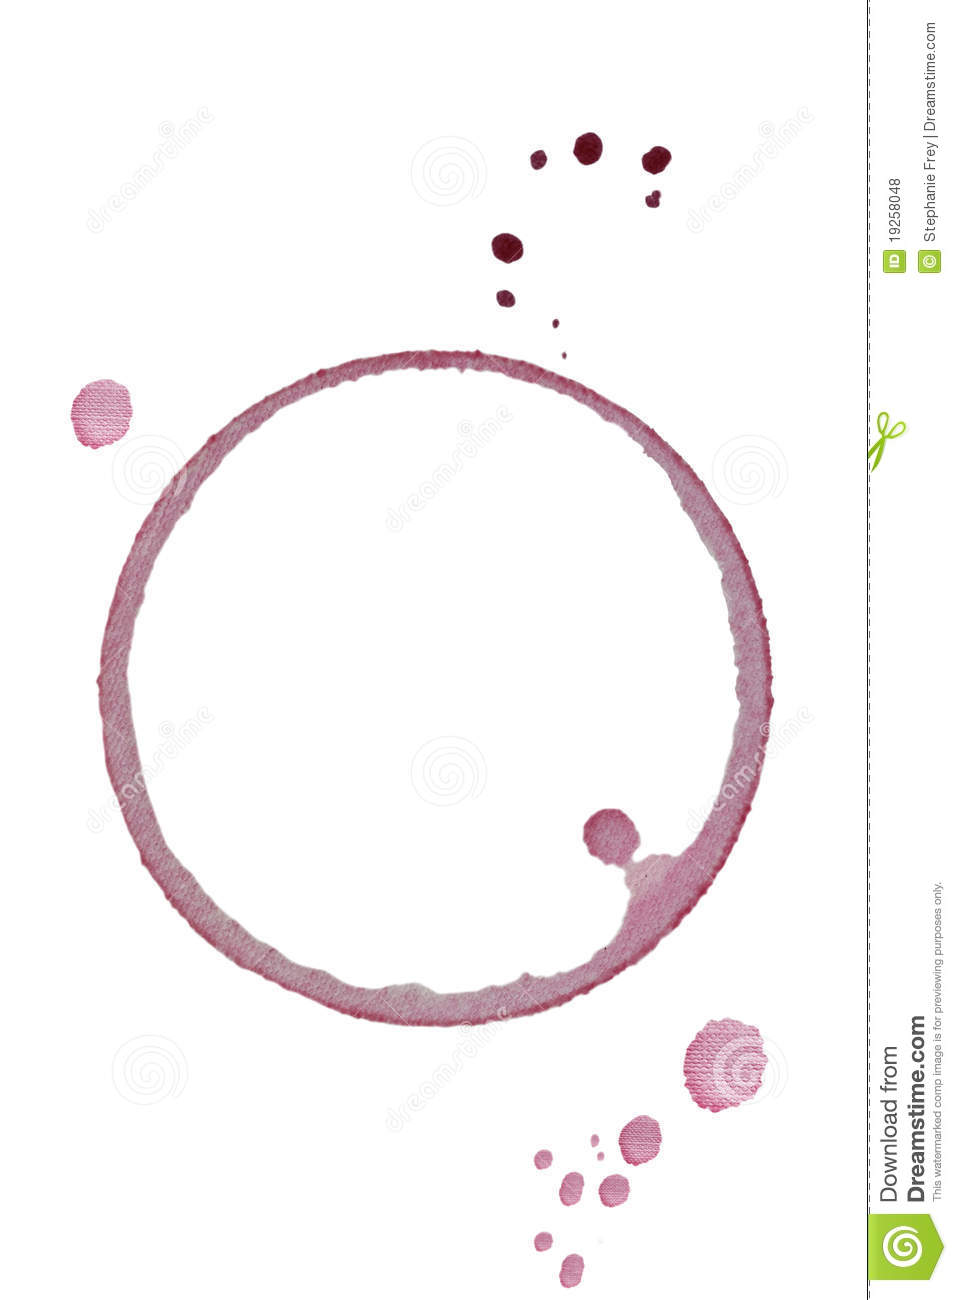 Red Wine Glass Ring Royalty Free Stock Photos Image